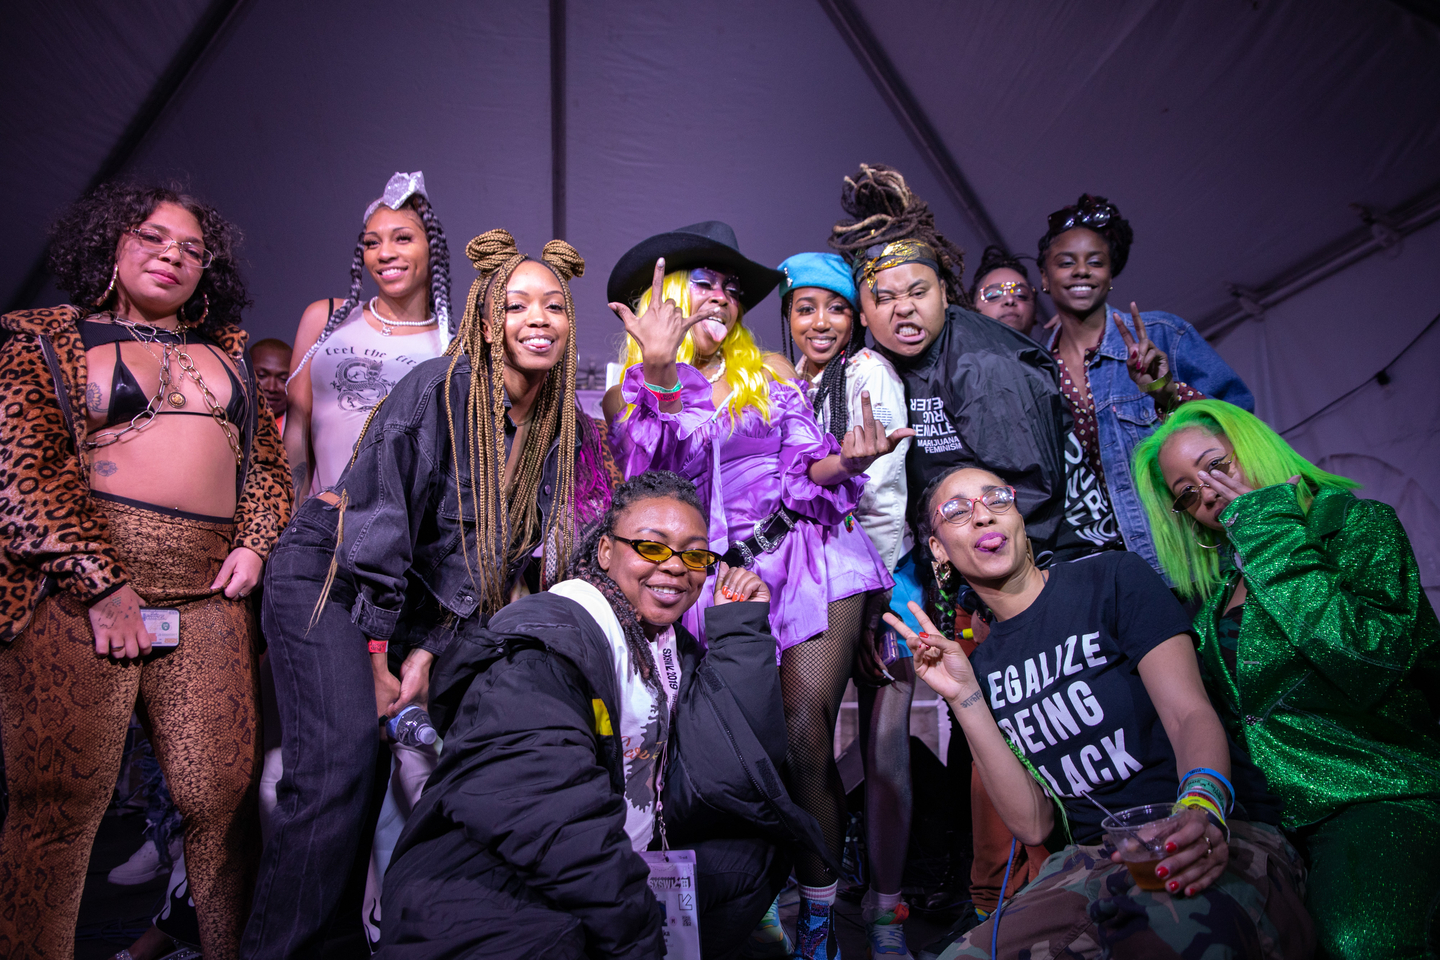 bbymutha at Palm Door on Sixth Patio, presented by Care Free Black Girl – Photo by Joann Hetrick